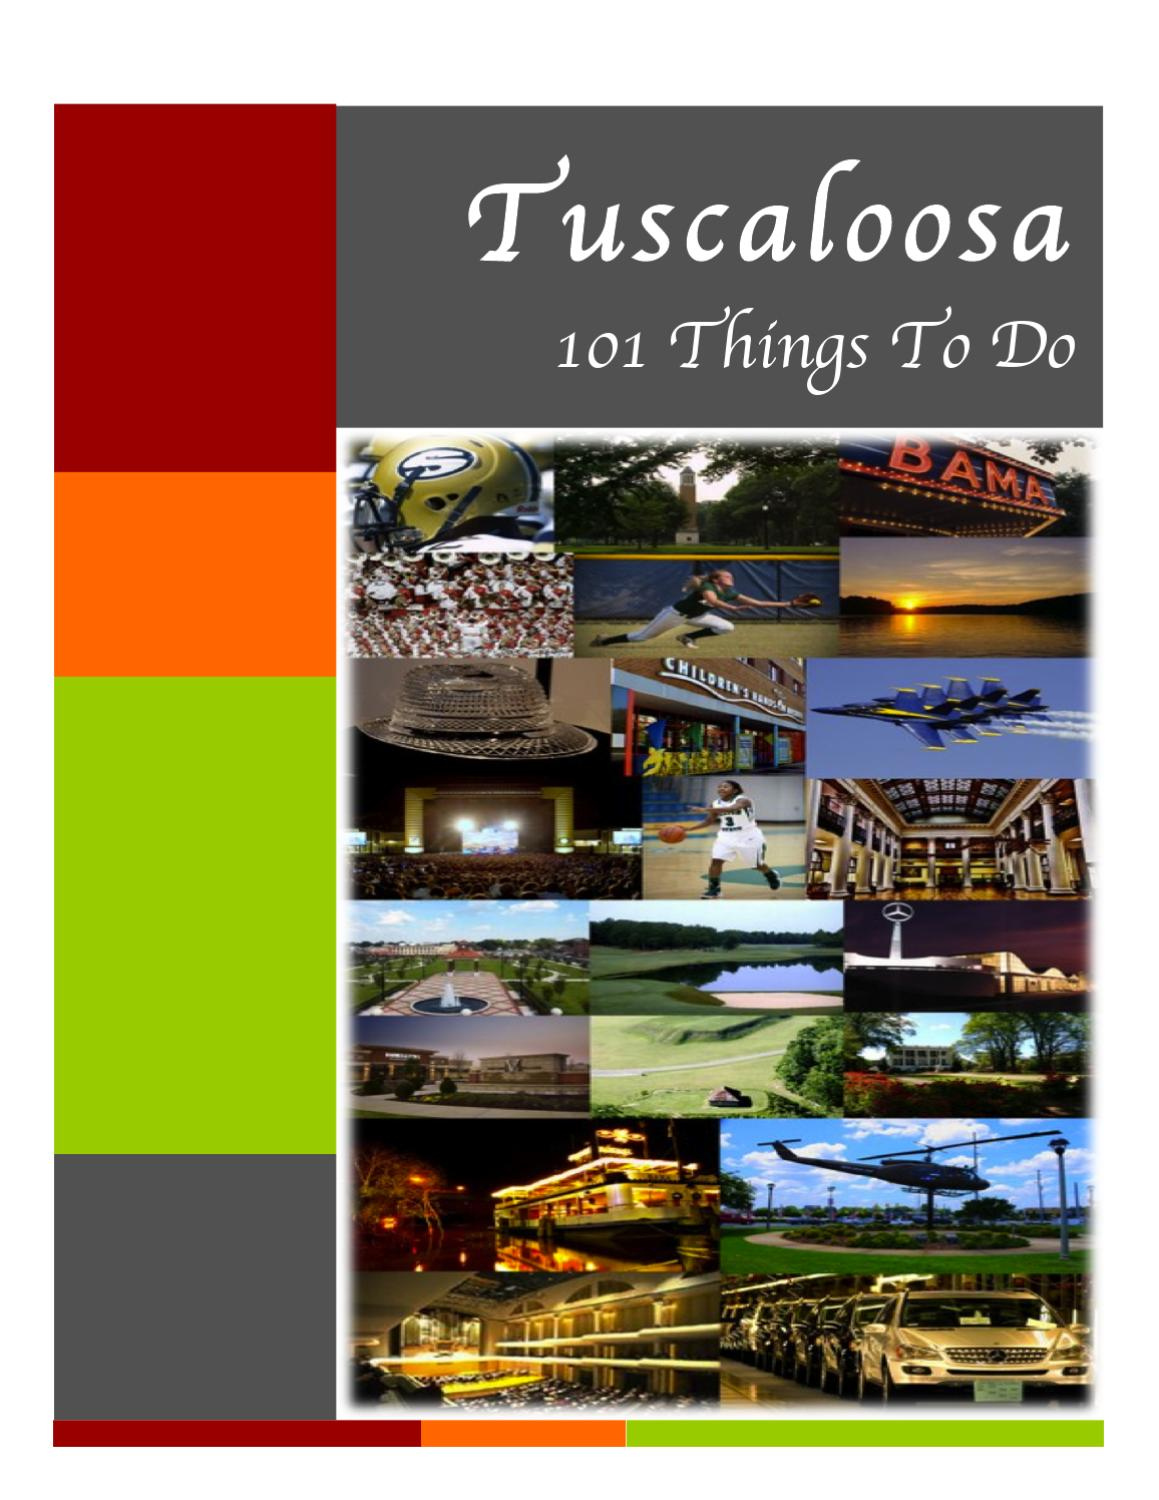 101 Things To Do In Tuscaloosa By Tuscaloosa Tourism Sports